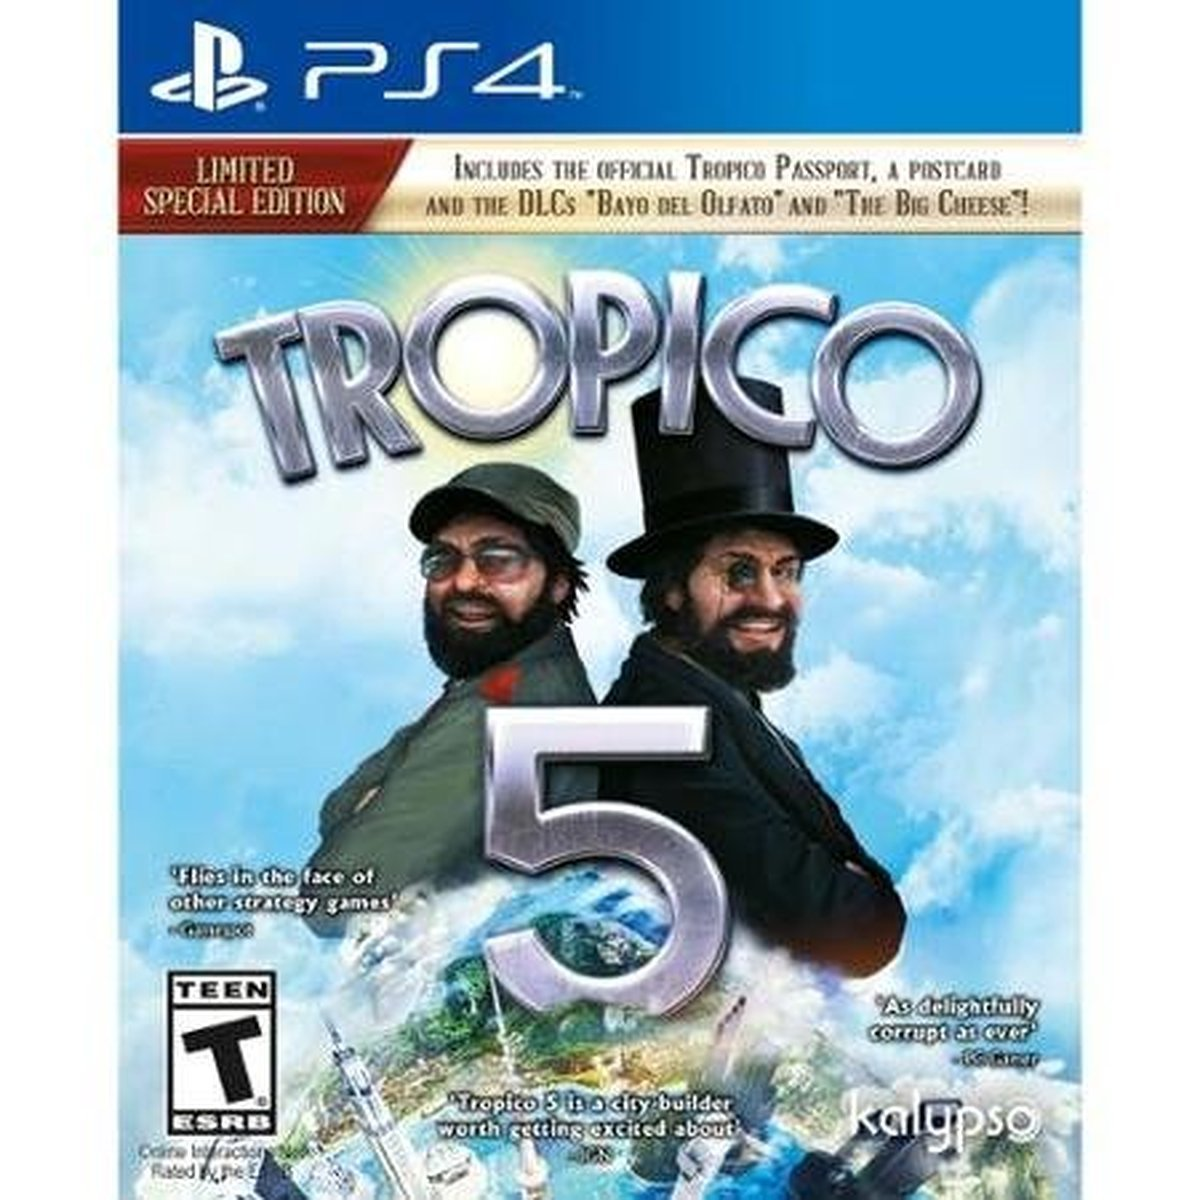 Tropico New product type 5 PS4 - PlayStation Sale 4 Limited Edition Special